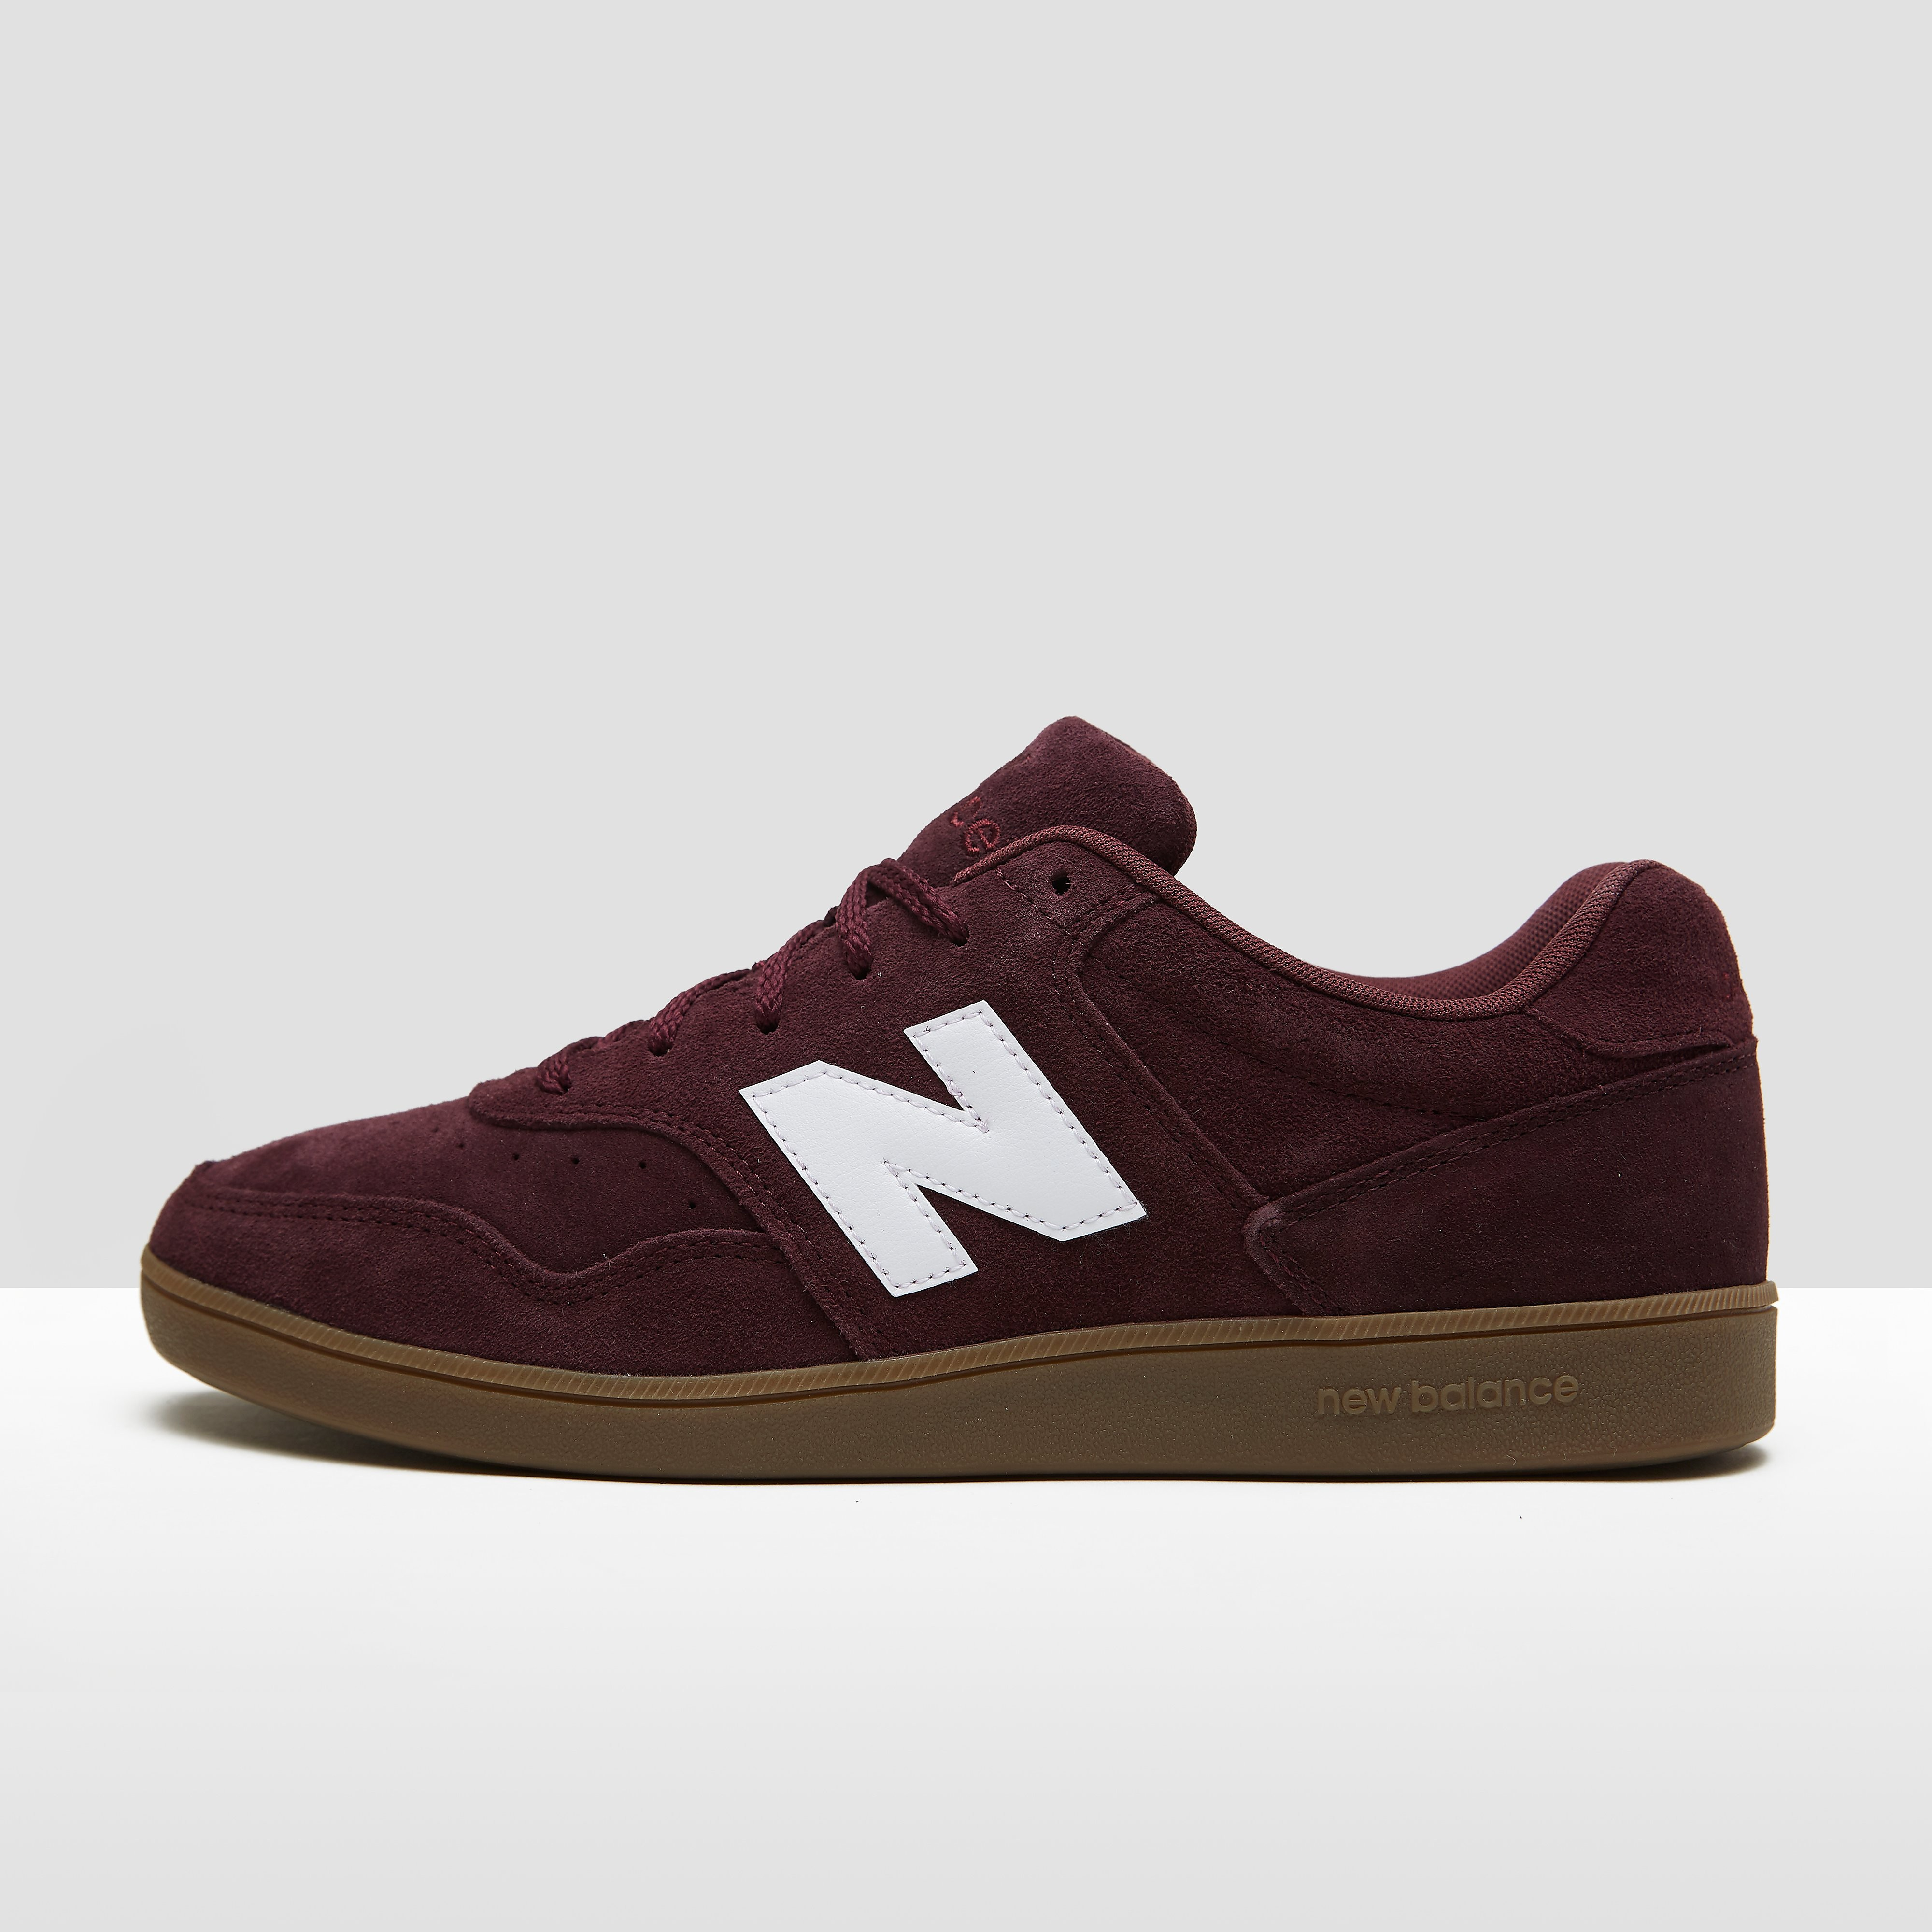 NEW BALANCE CT288 SNEAKERS ROOD HEREN